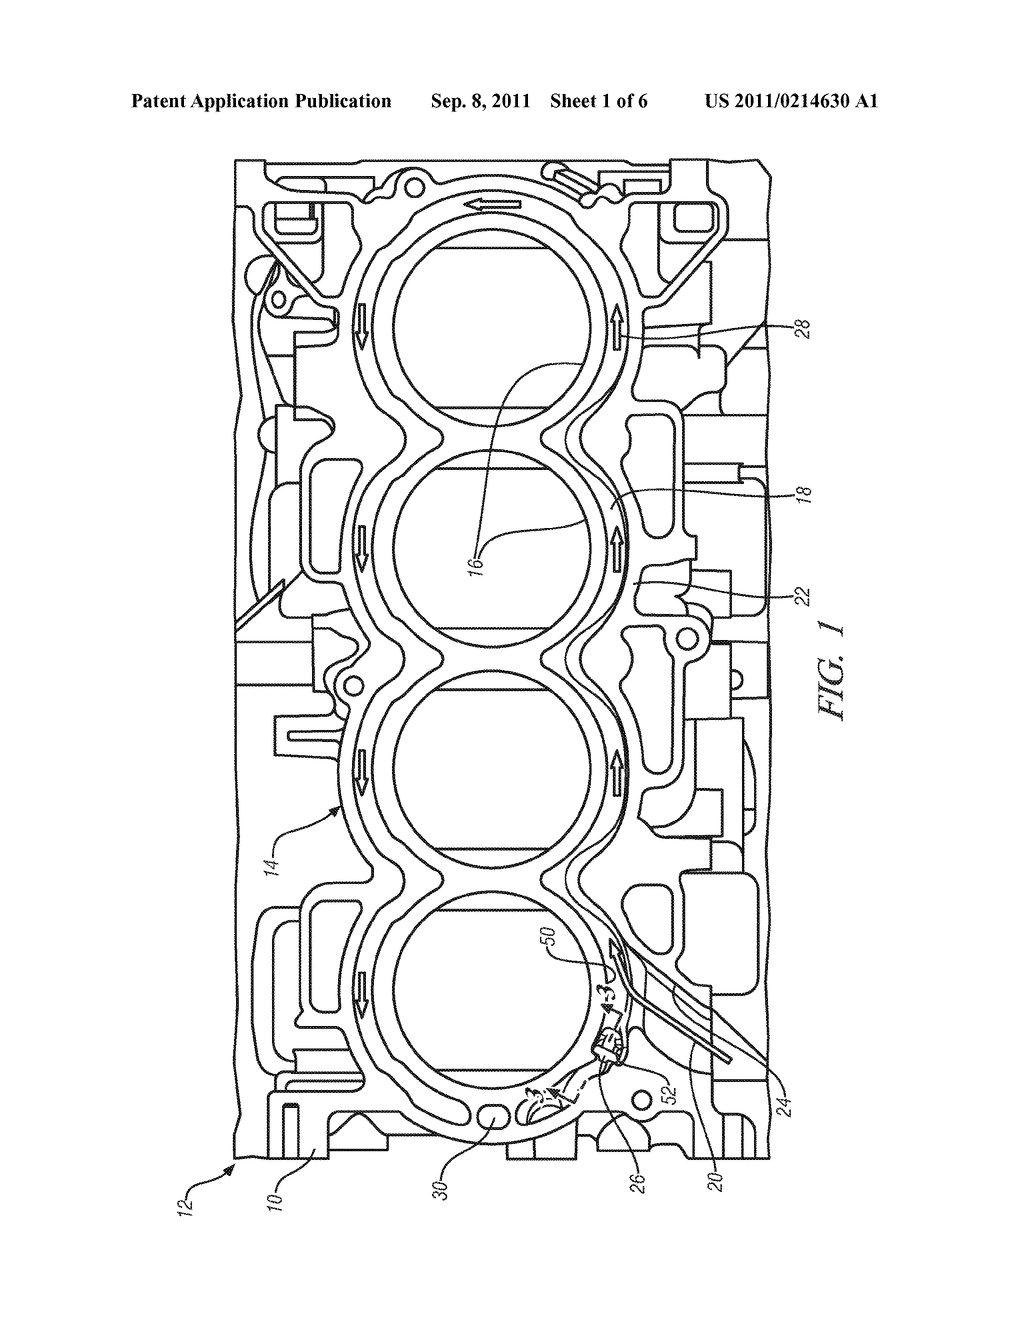 engine block assembly for internal combustion engine   diagram    engine block assembly for internal combustion engine   diagram  schematic  and image